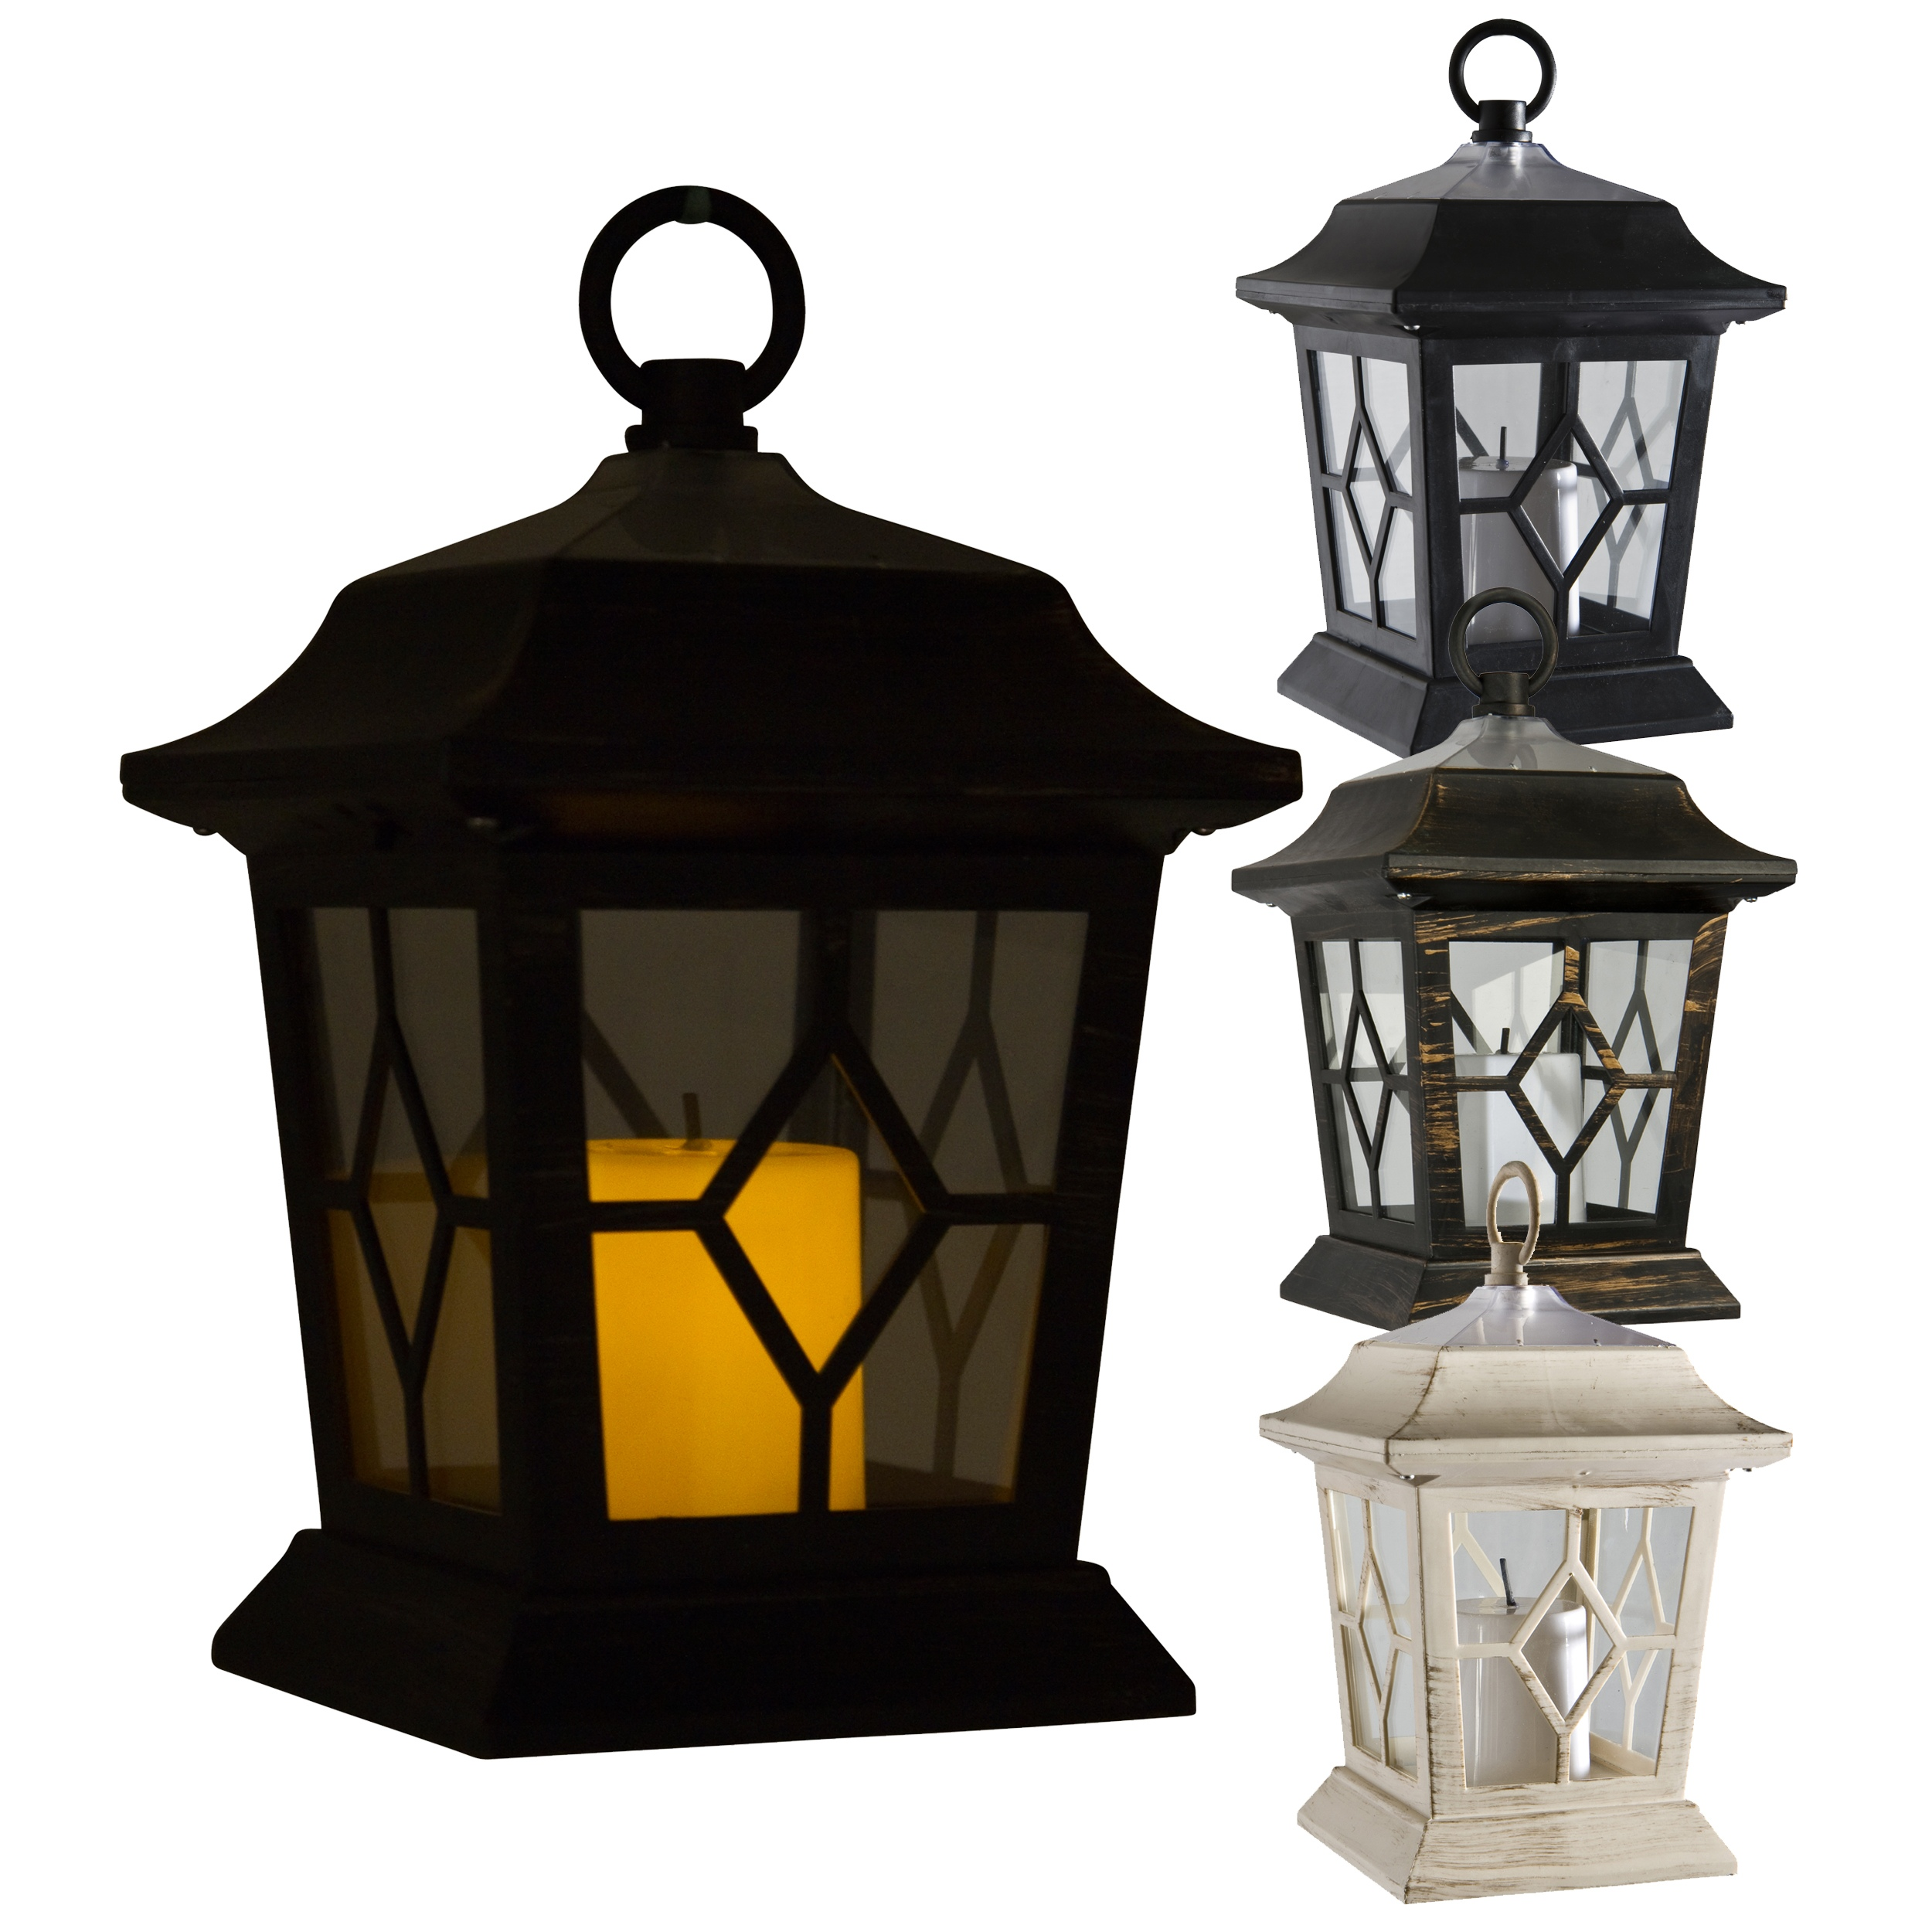 LED Solar Powered Victorian Candle Lantern Lamp Light Garden Mood Eco Friendl